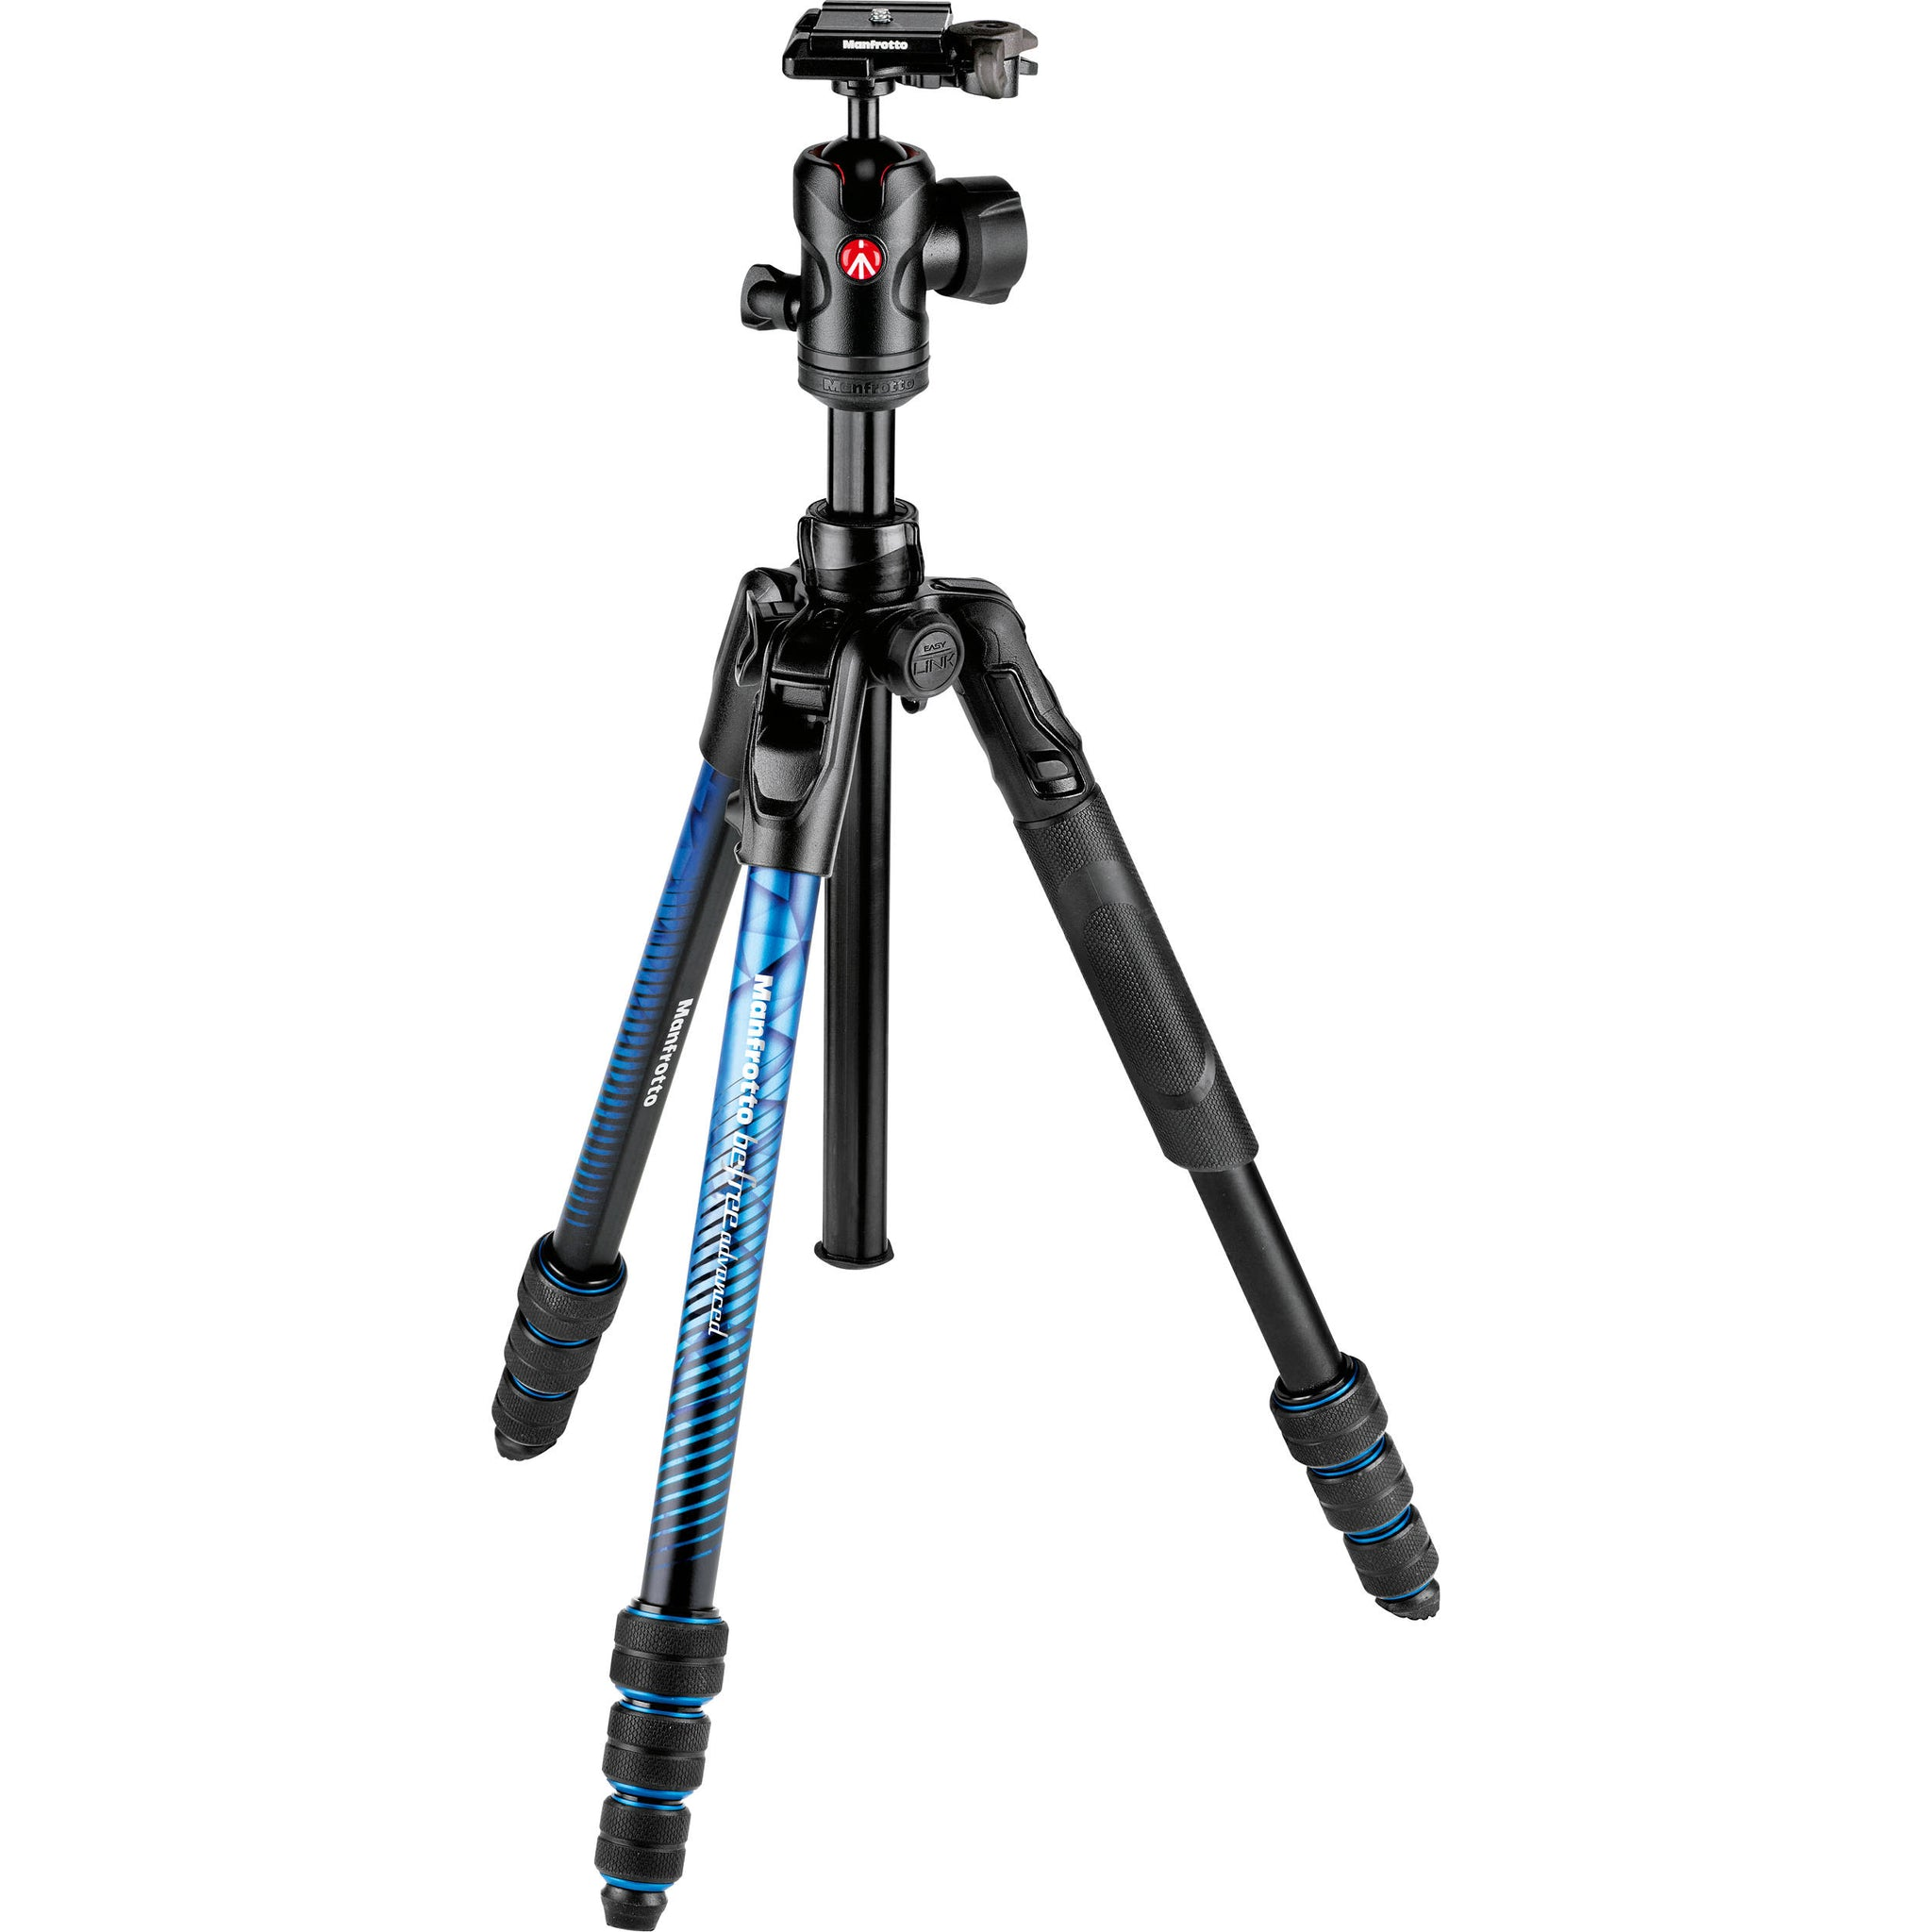 Manfrotto Befree Advanced Travel Aluminum Tripod with 494 Ball Head (Twist Locks, Blue)